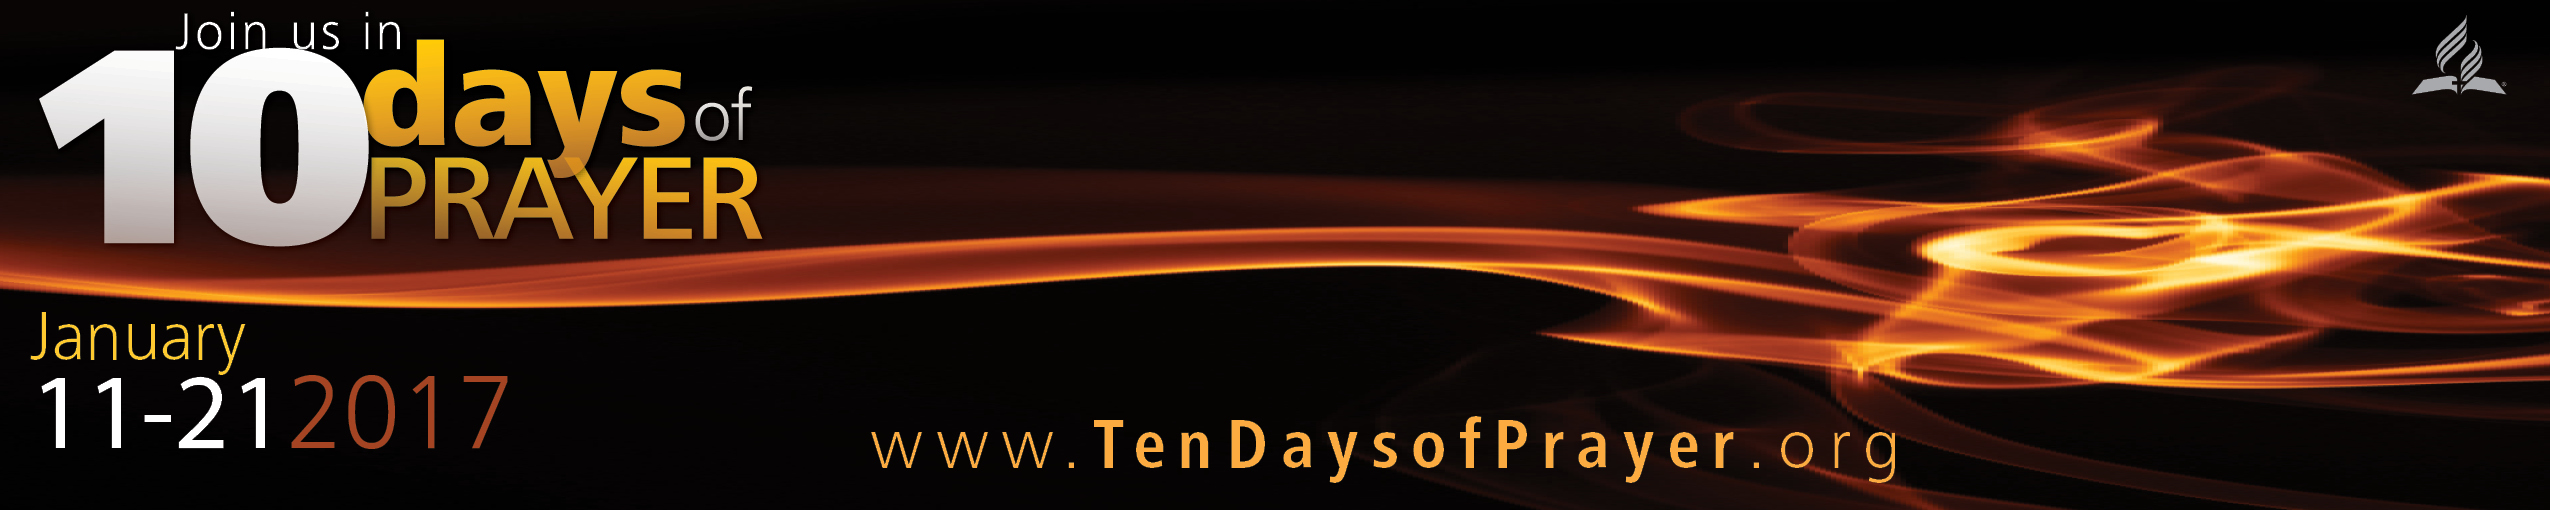 Ten Days of Prayer Banner